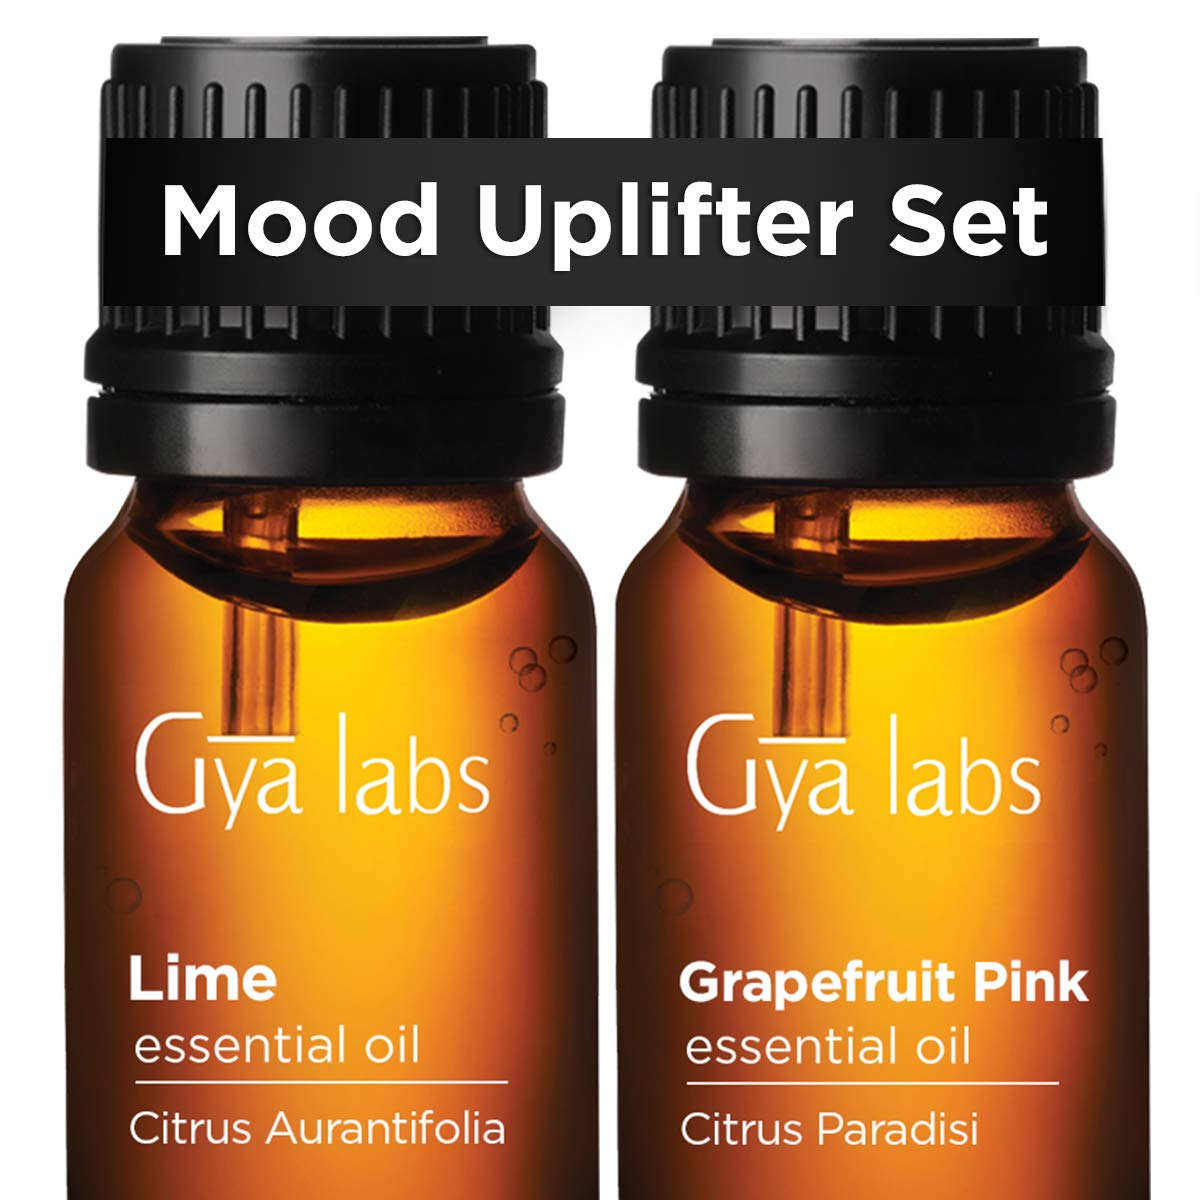 Lime Oil & Grapefruit Oil - Gya Labs Mood Uplifter Set for Brighter Moods - 100% Pure Therapeutic Grade Essential Oils Set - 2x10ml